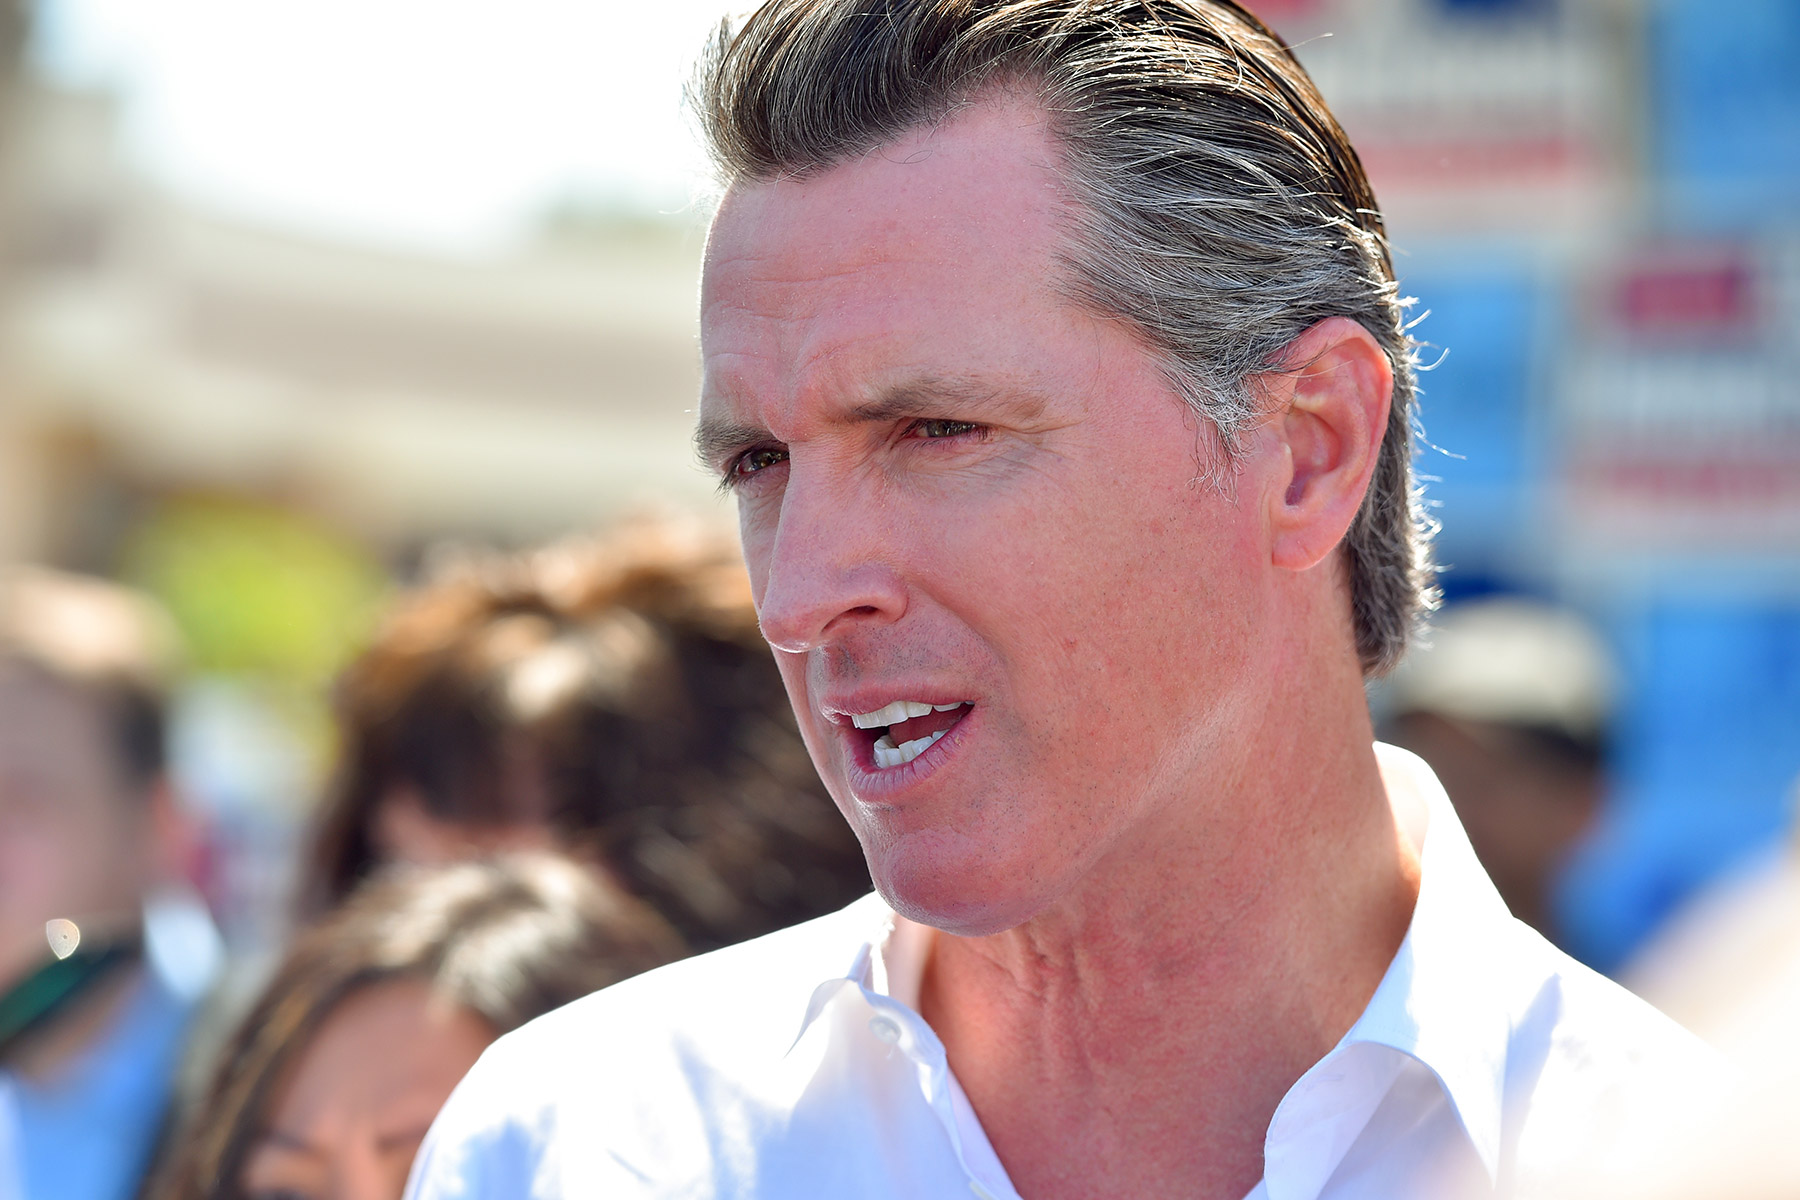 California Gov. Gavin Newsom has supported legislation aimed at controlling rent increases. (Getty Images)